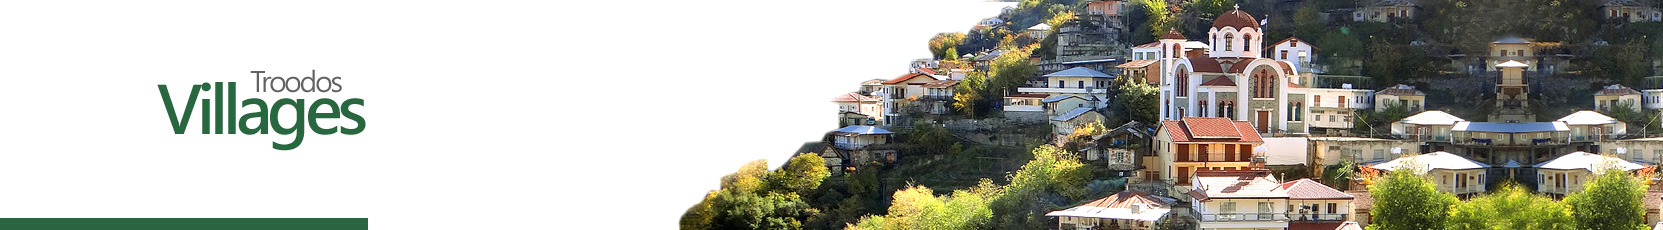 Green Troodos Villages